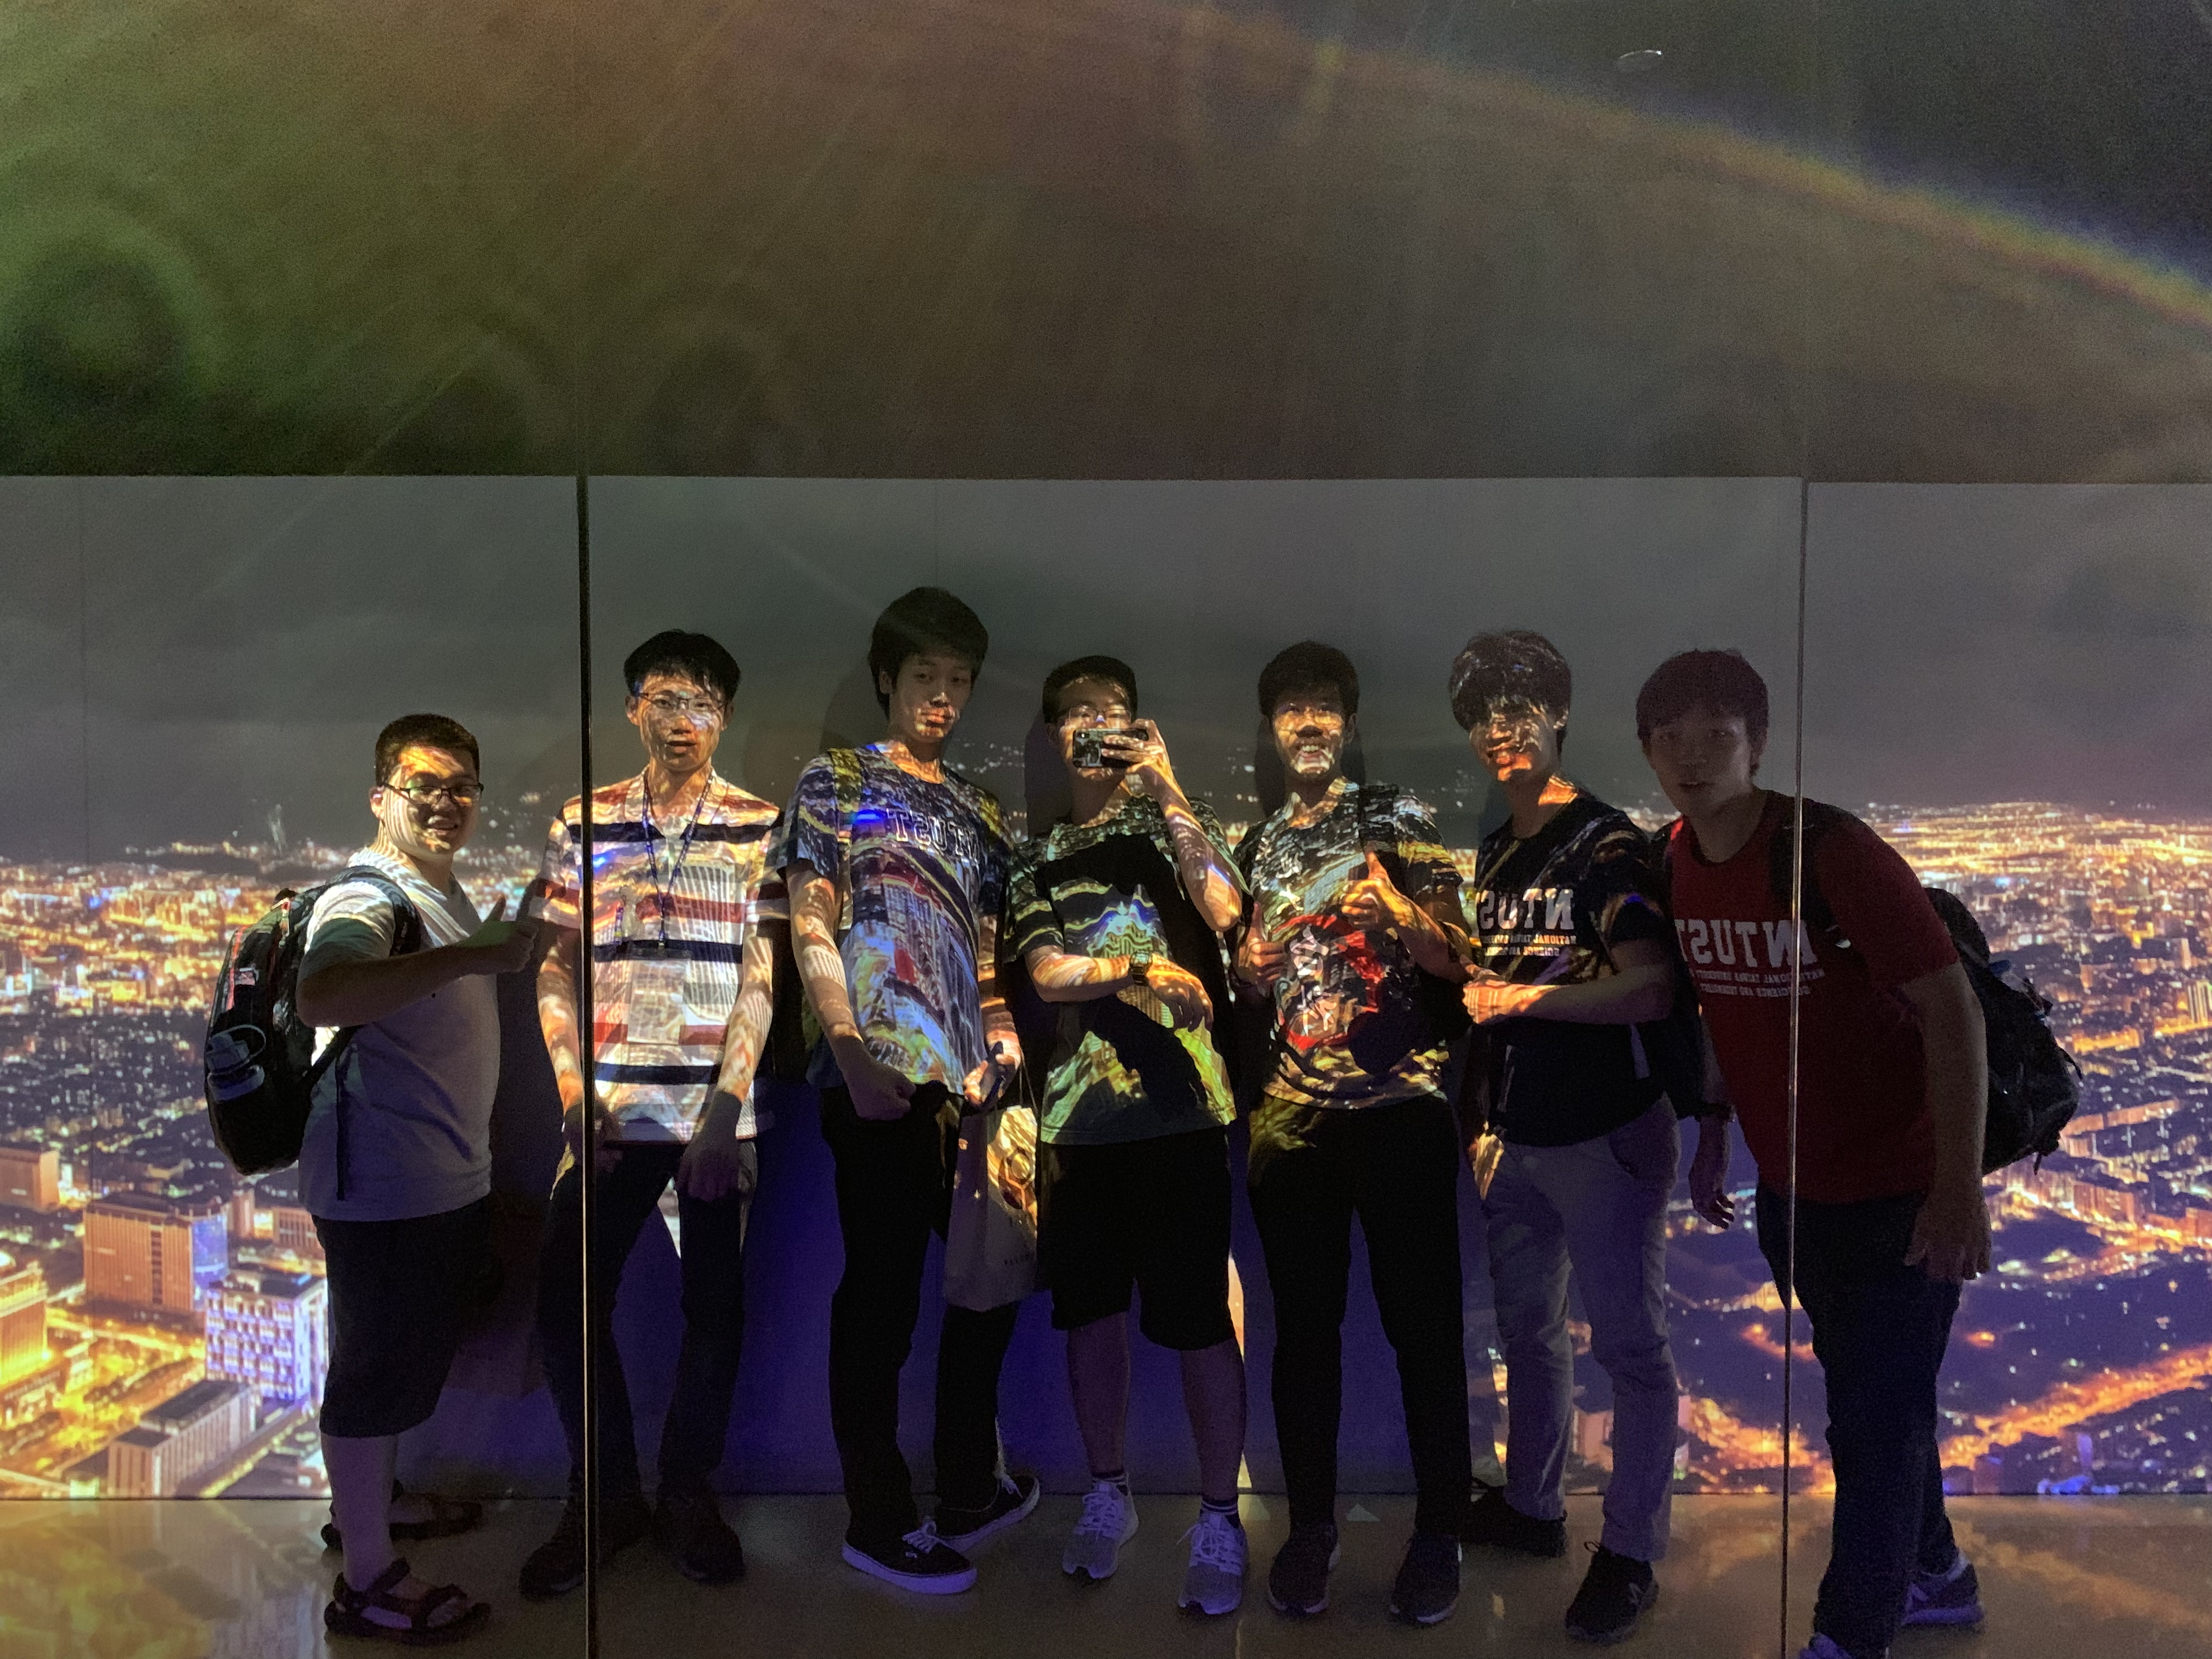 (Taipei 101 observation deck along with Tokyo tech and Taiwan Tech friends)